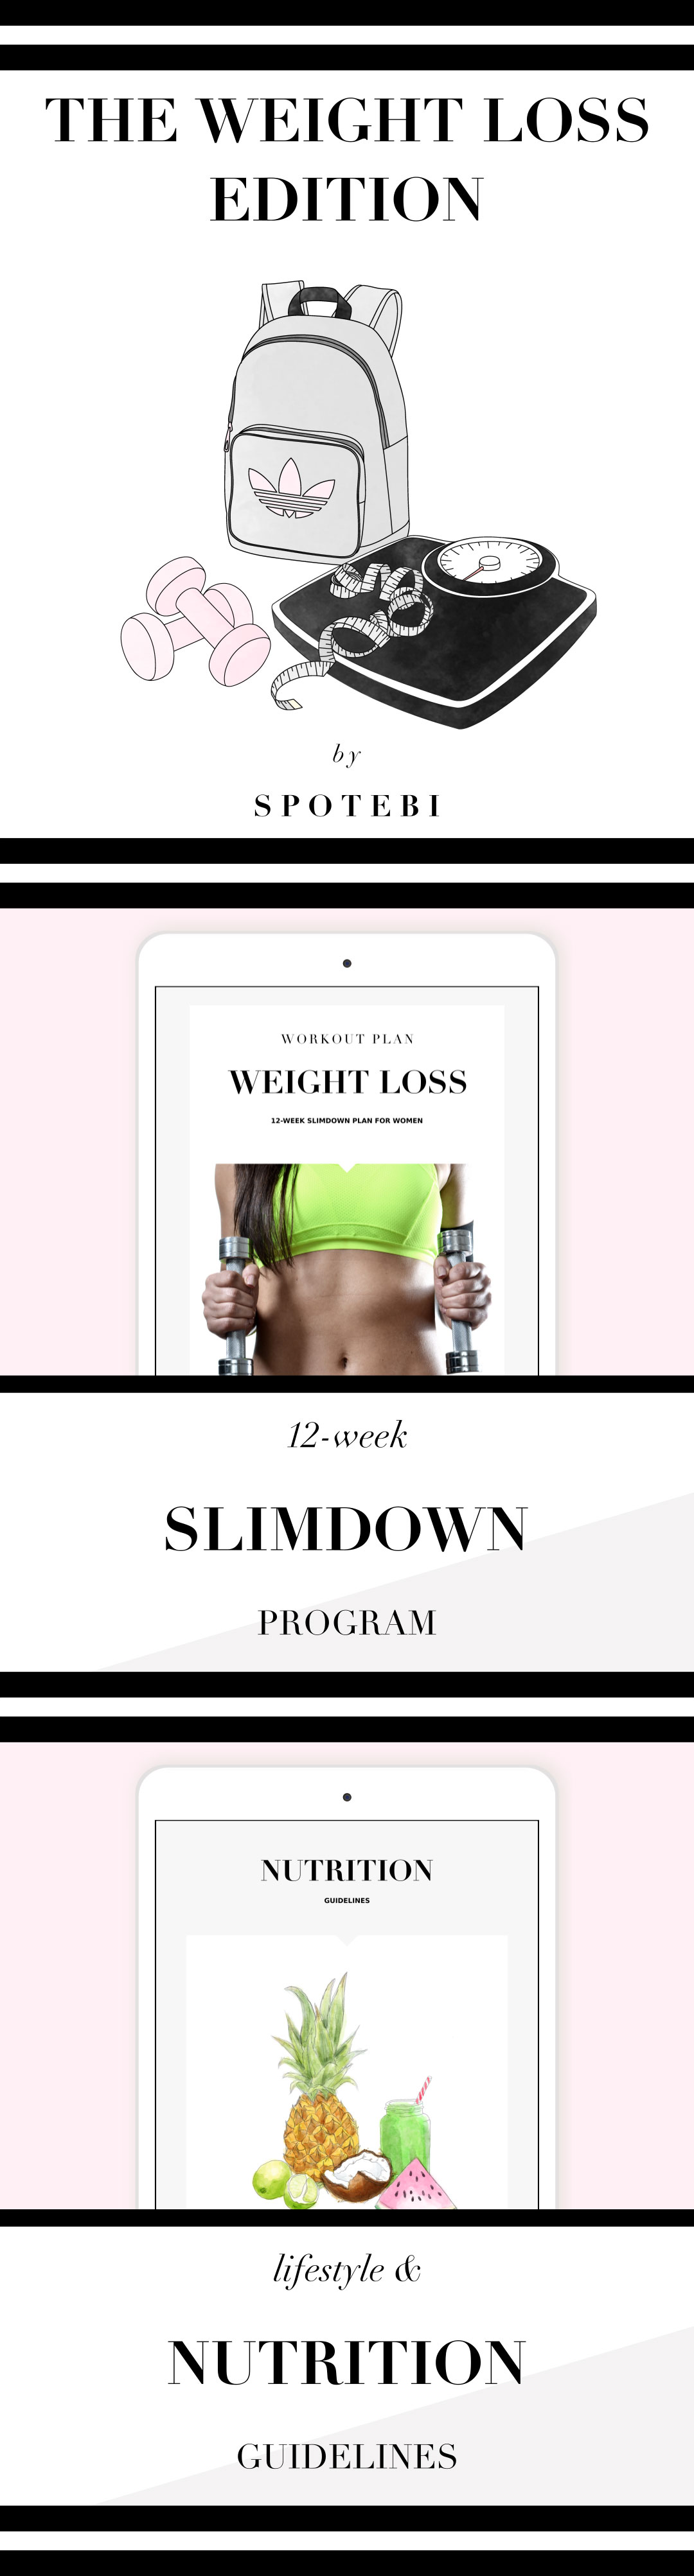 weight loss and muscle gain workout plan pdf